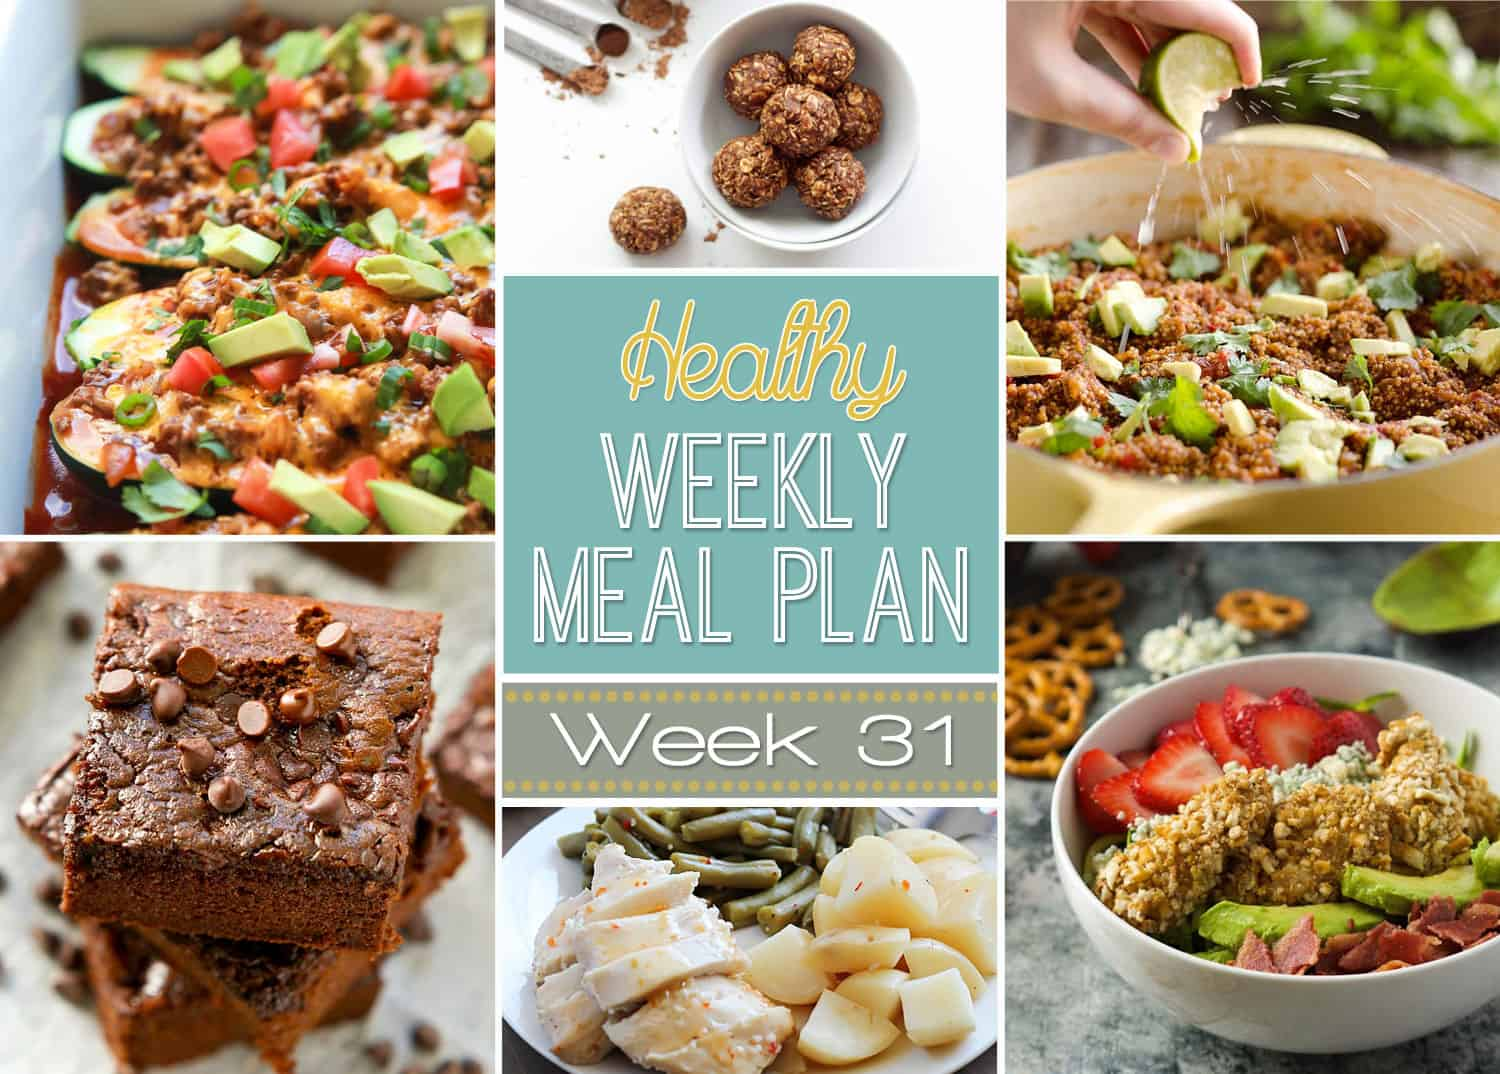 Healthy Make-Ahead Lunch Meal Plan for the Work Week By: Victoria Seaver, M.S., R.D., C.D., Digital Meal Plan Editor With some light prep at the beginning of the week, healthy lunches come together easily for 5 days of packable meals.